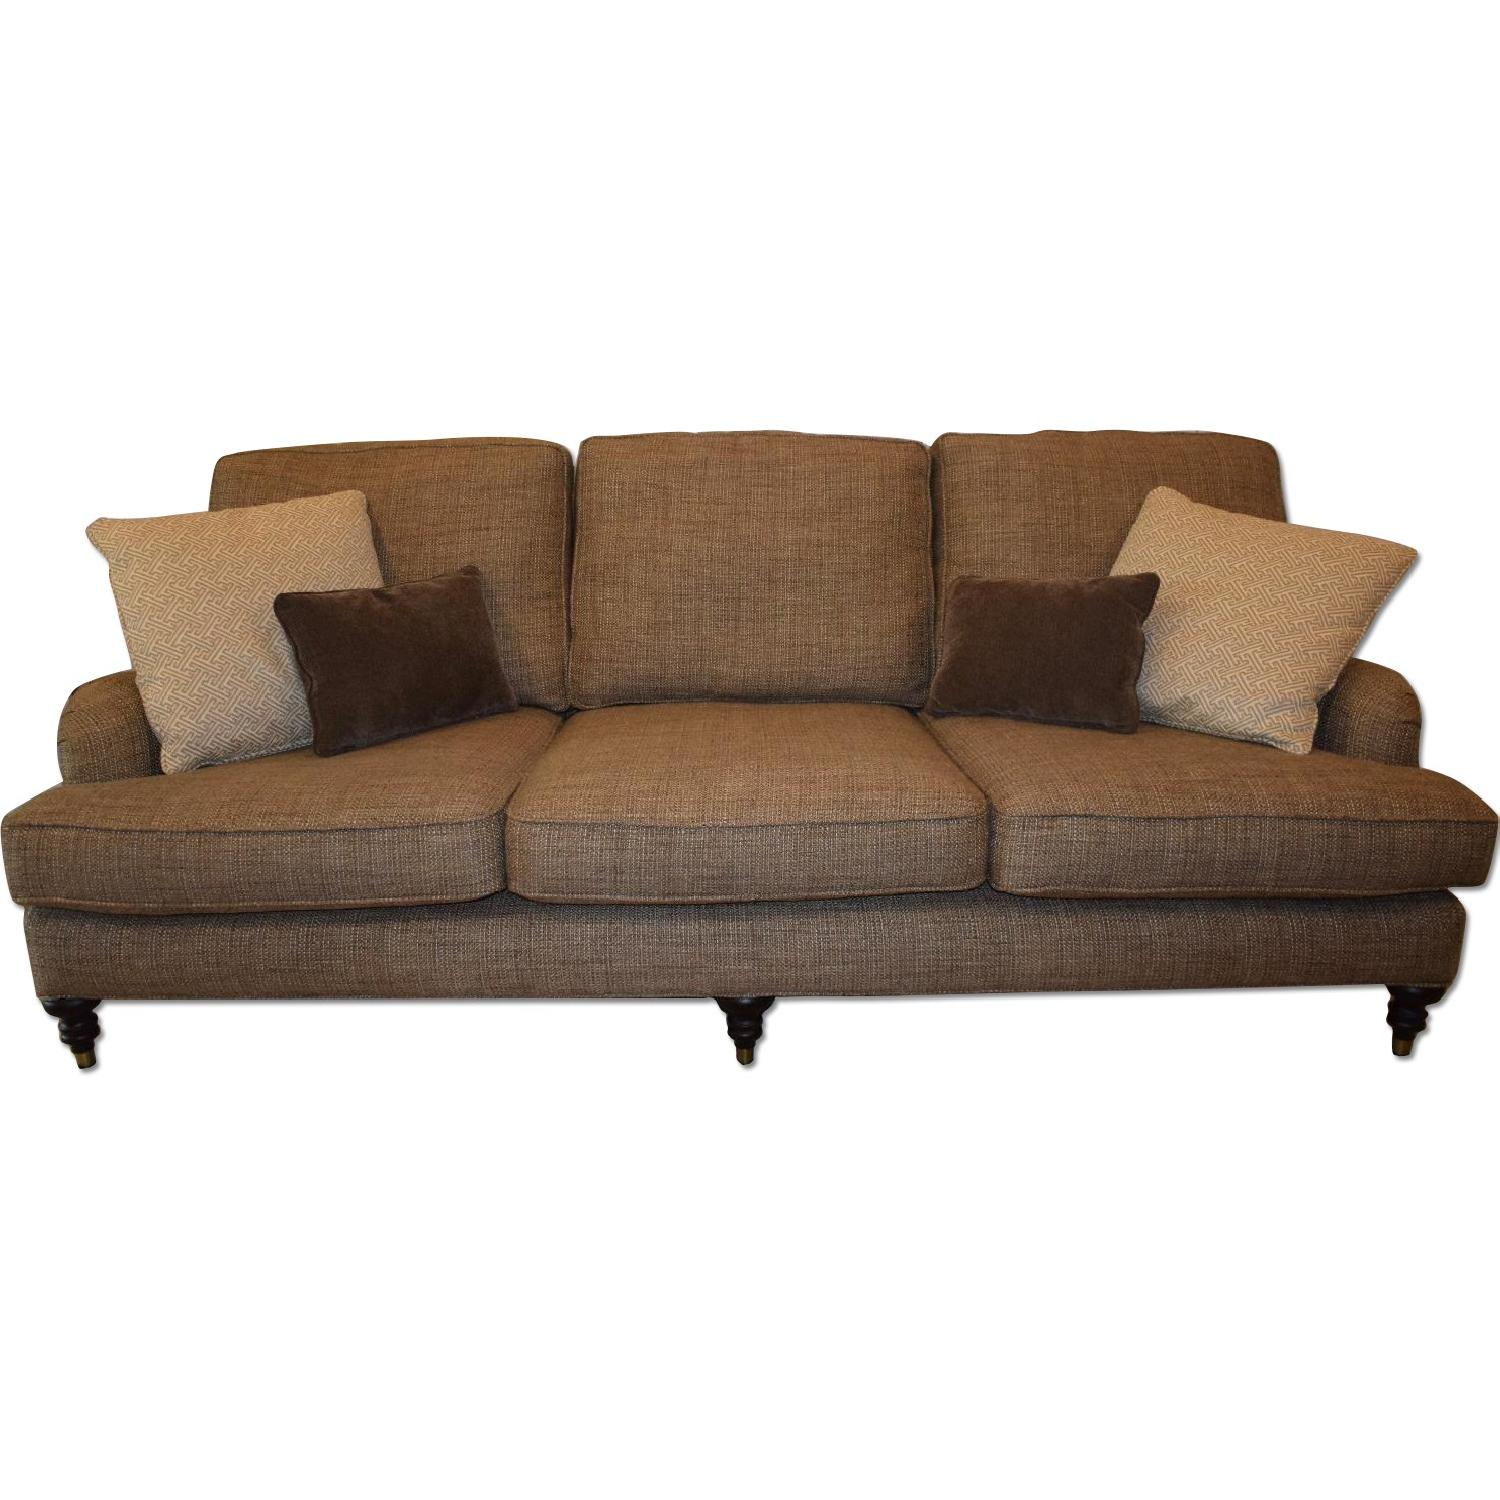 lee industries country willow sofa - Lee Industries Sofa